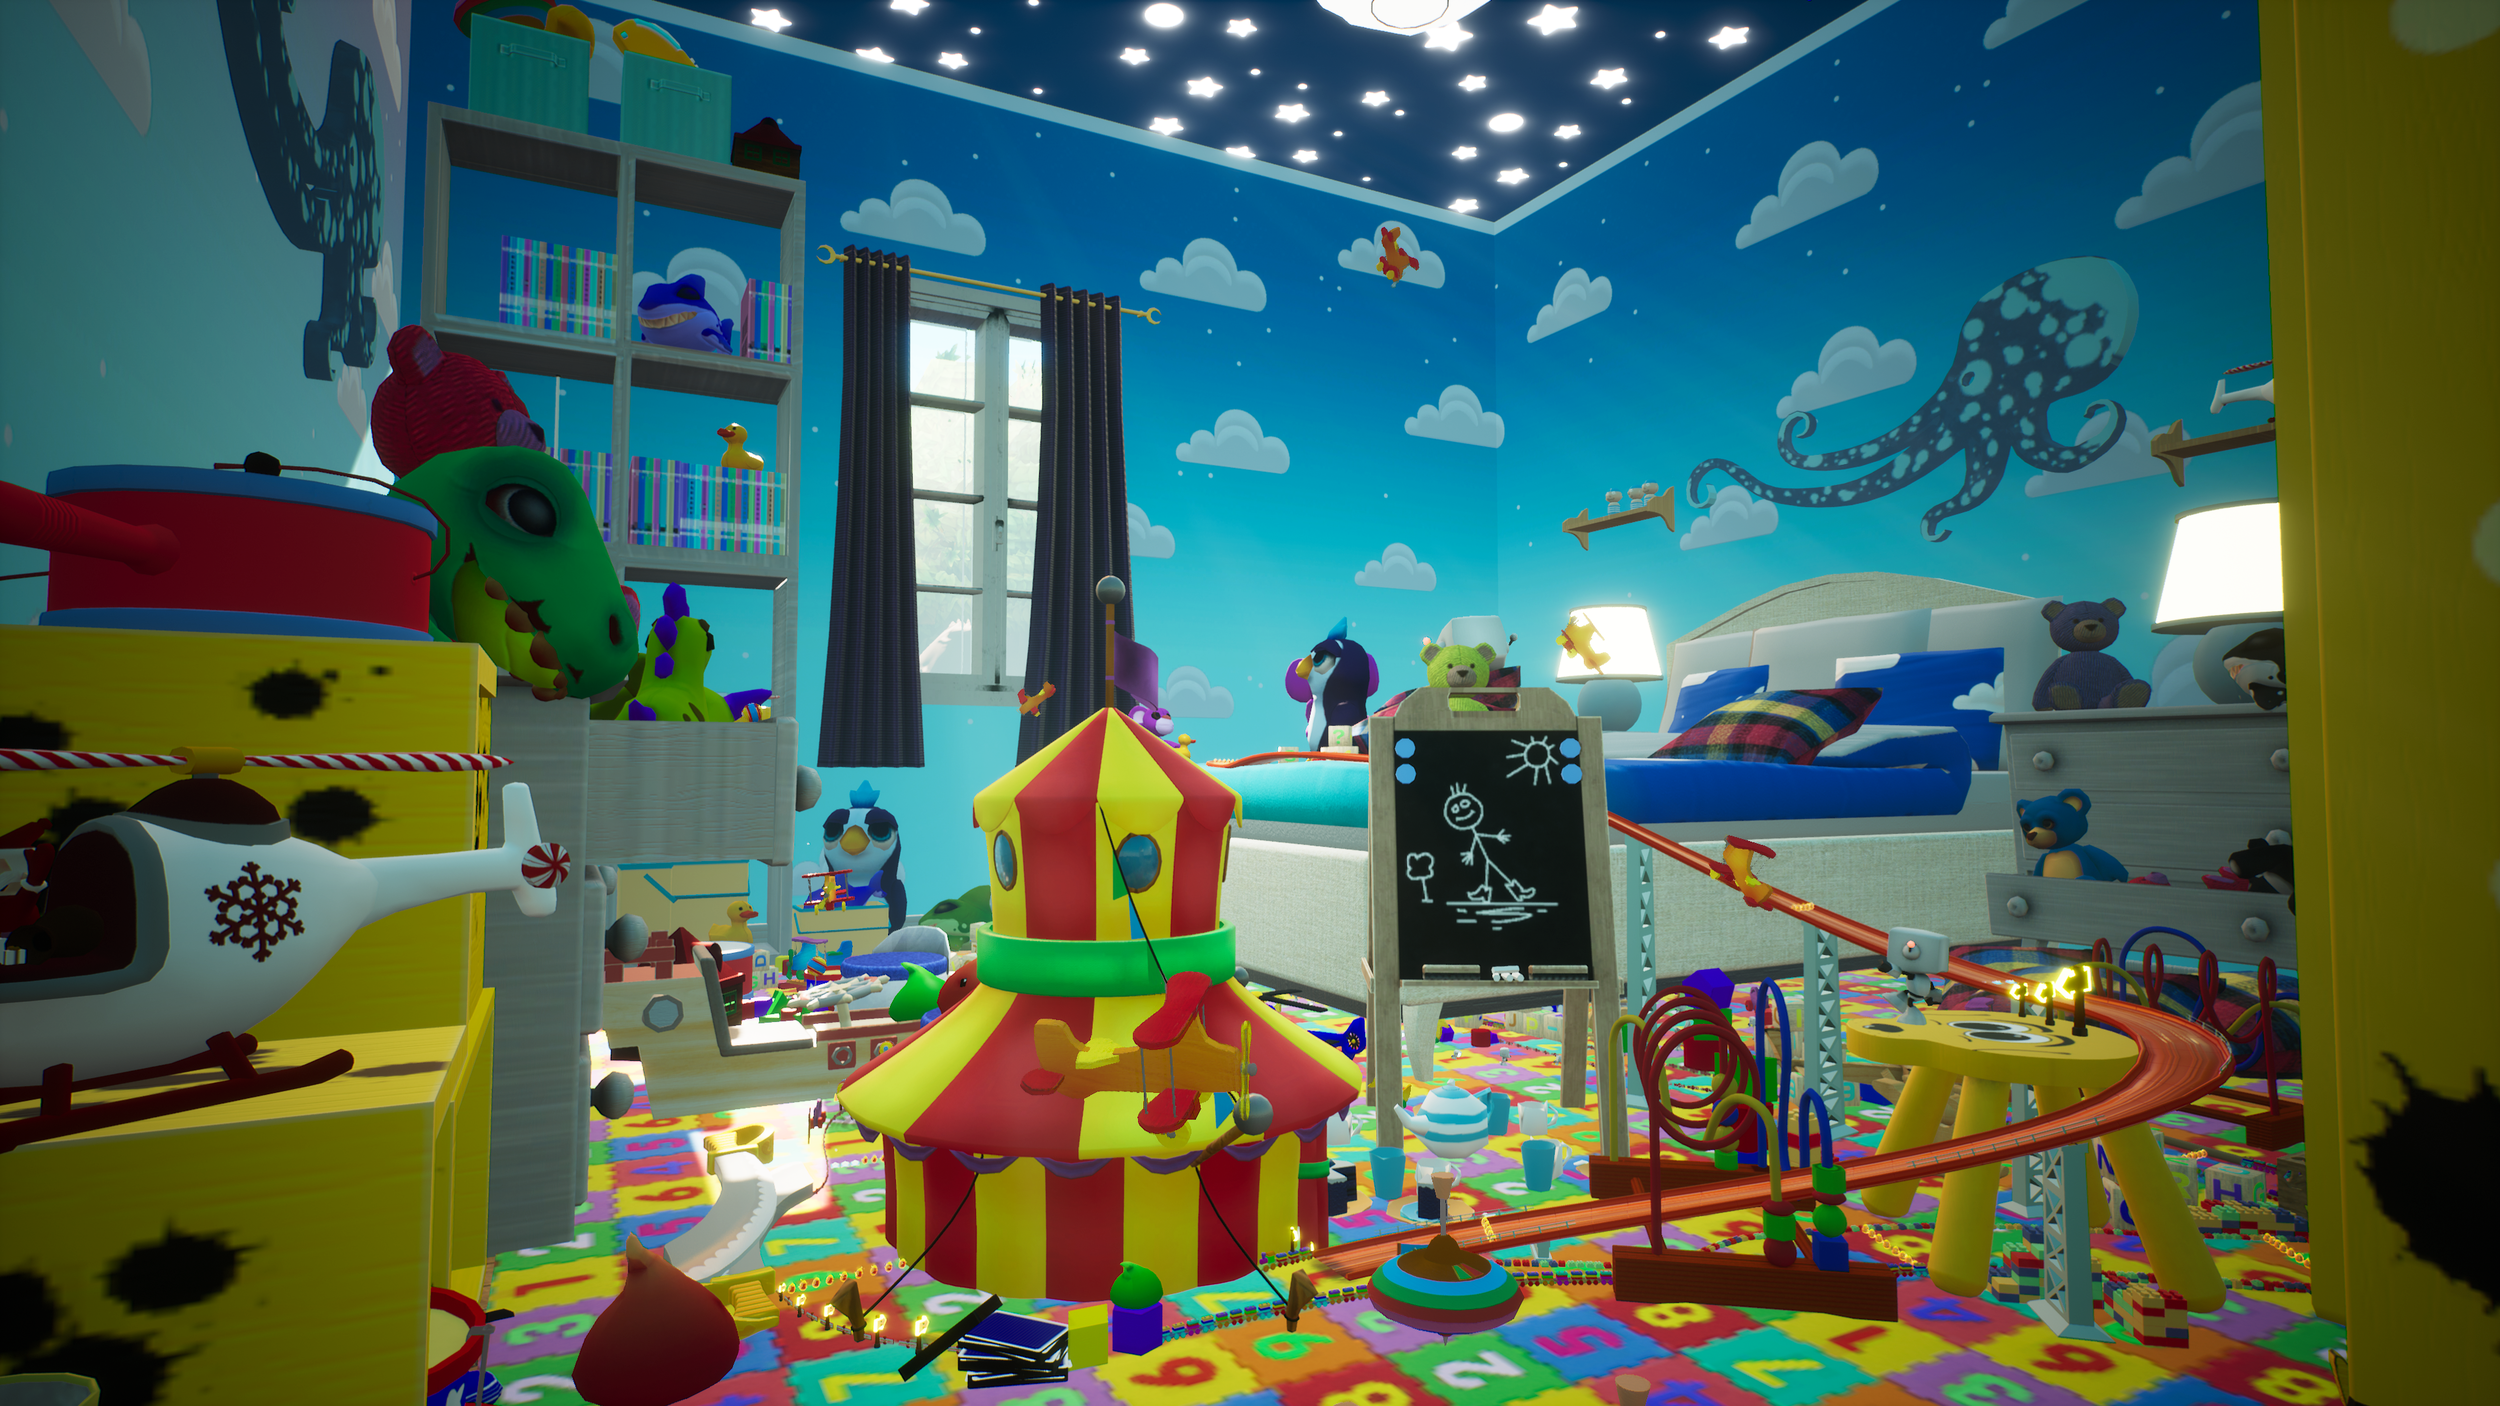 RWR_Announce_Playroom_screen (3).png